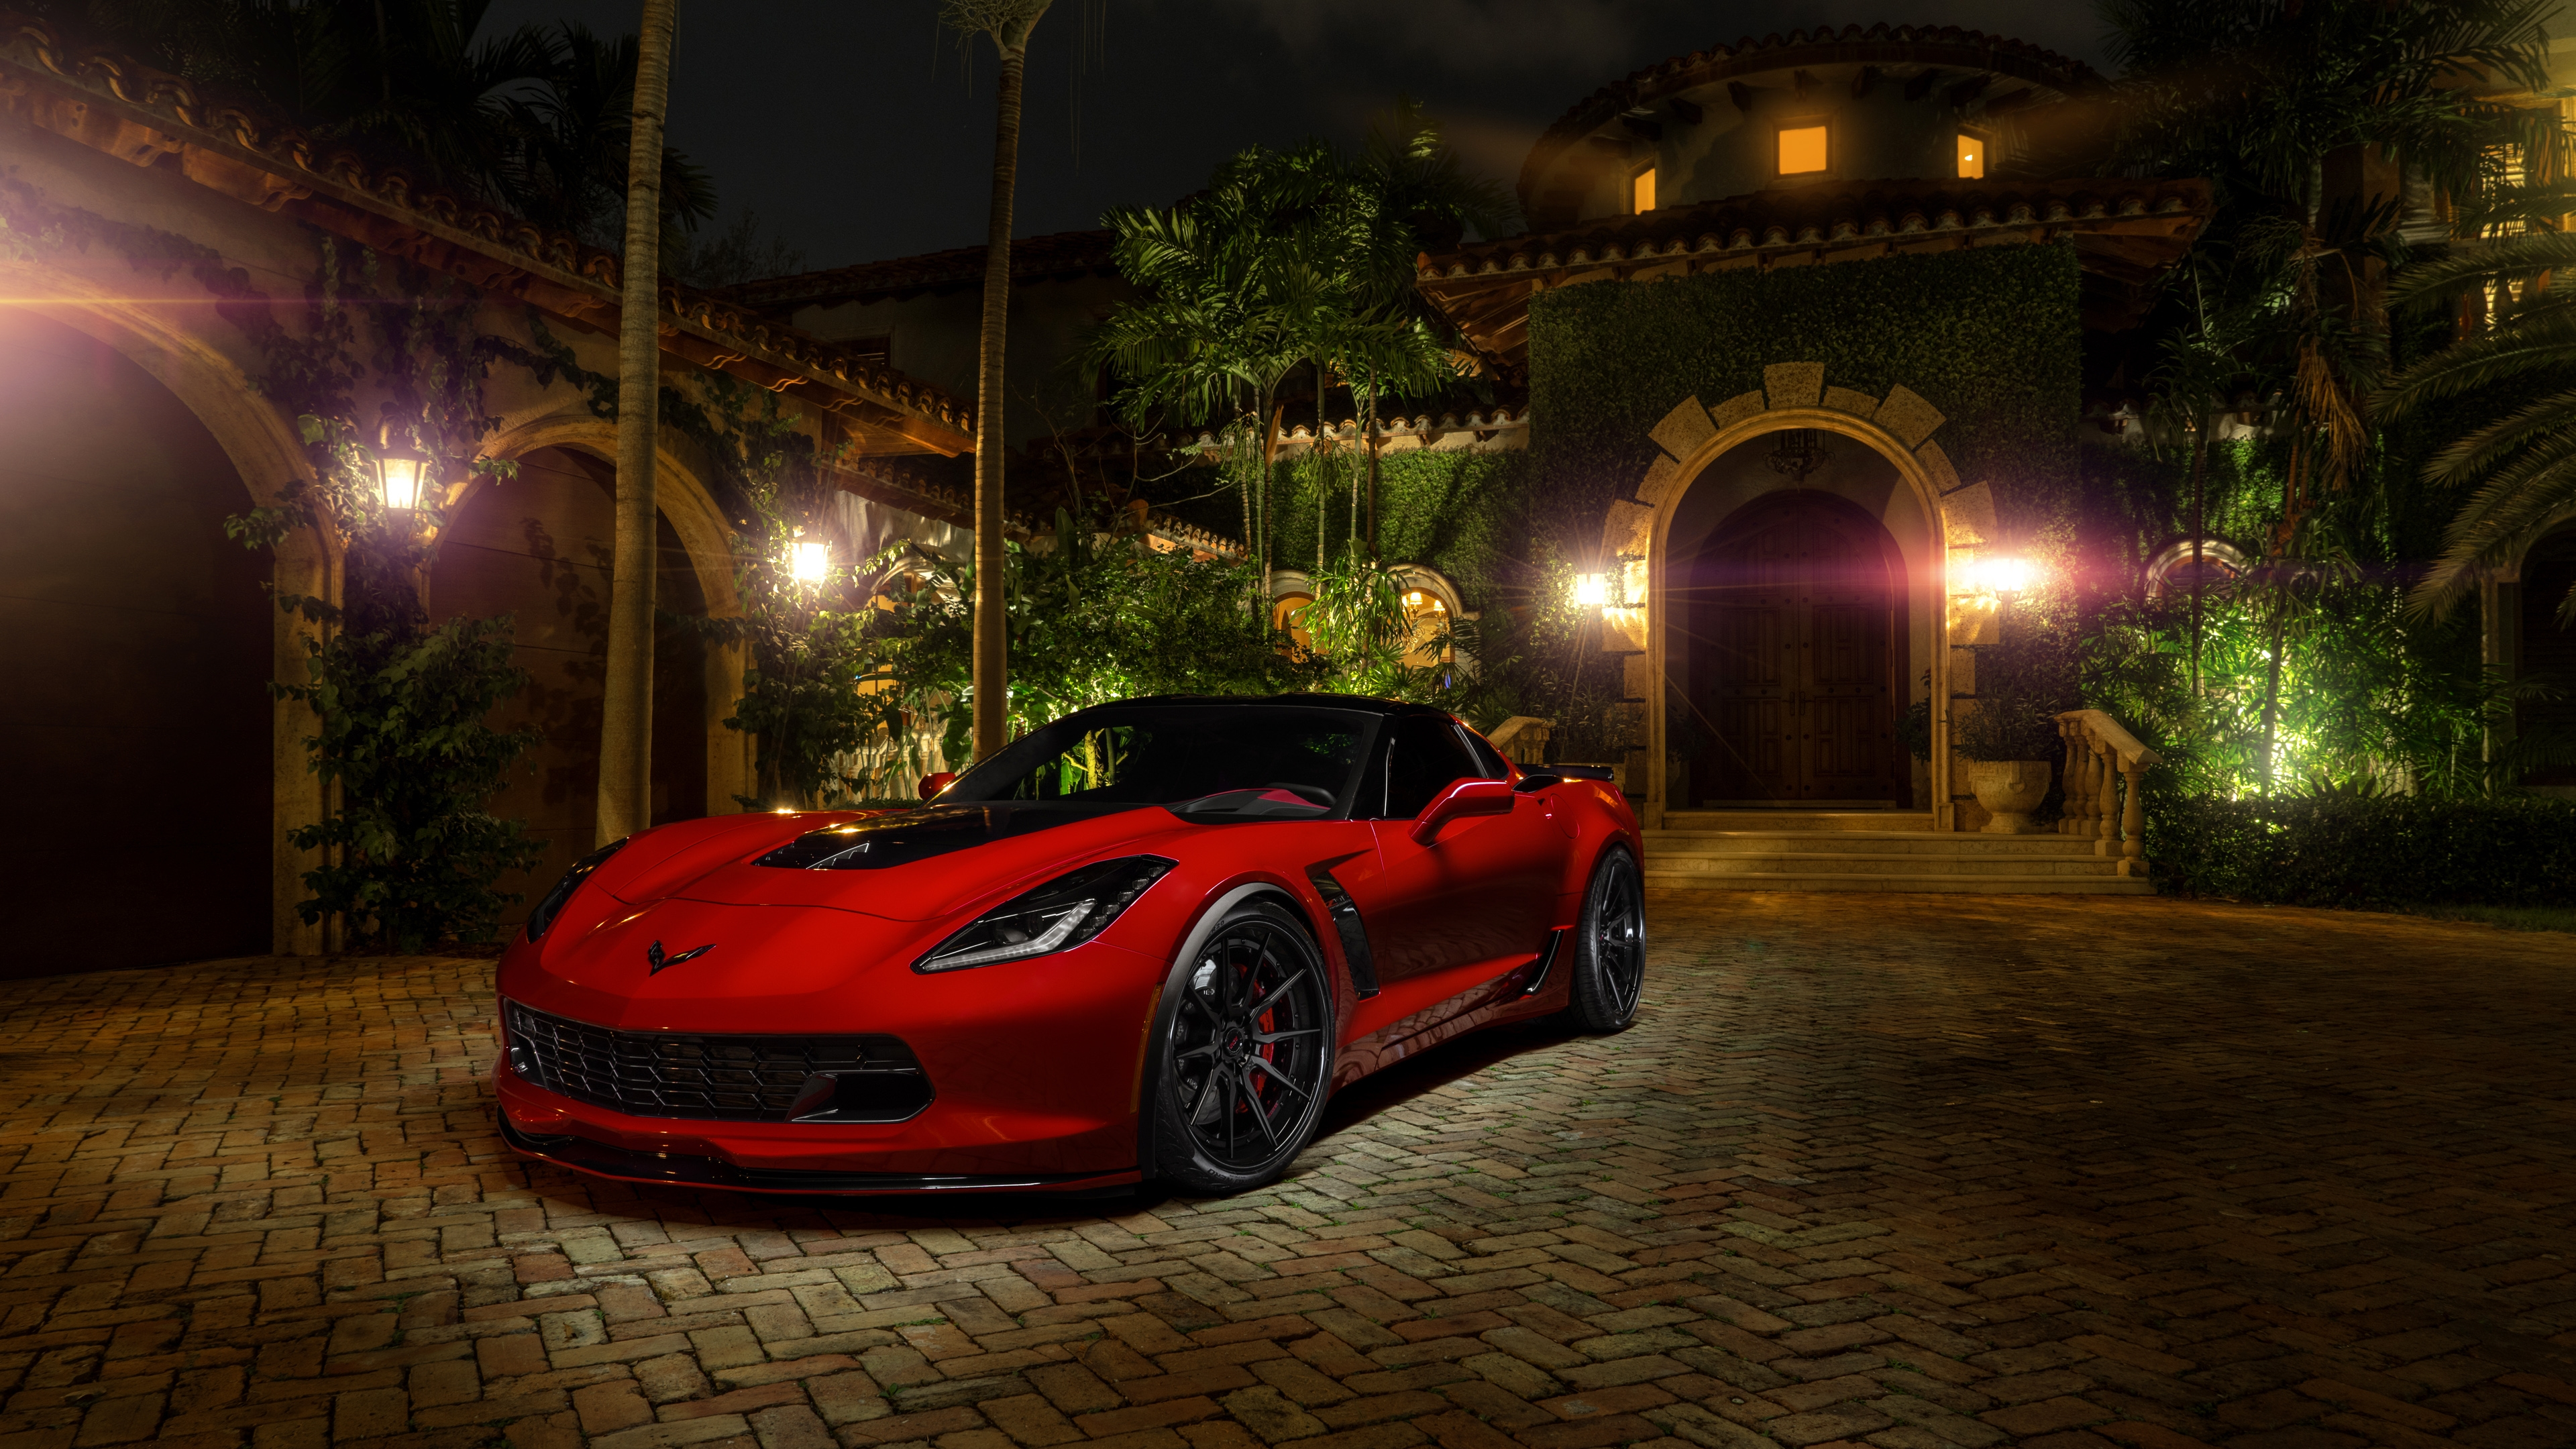 corvette-z-Adv-Chevrolet-Corvette-C-Z-Hd-Car-in-Corvette-Z-wallpaper-wp3604365